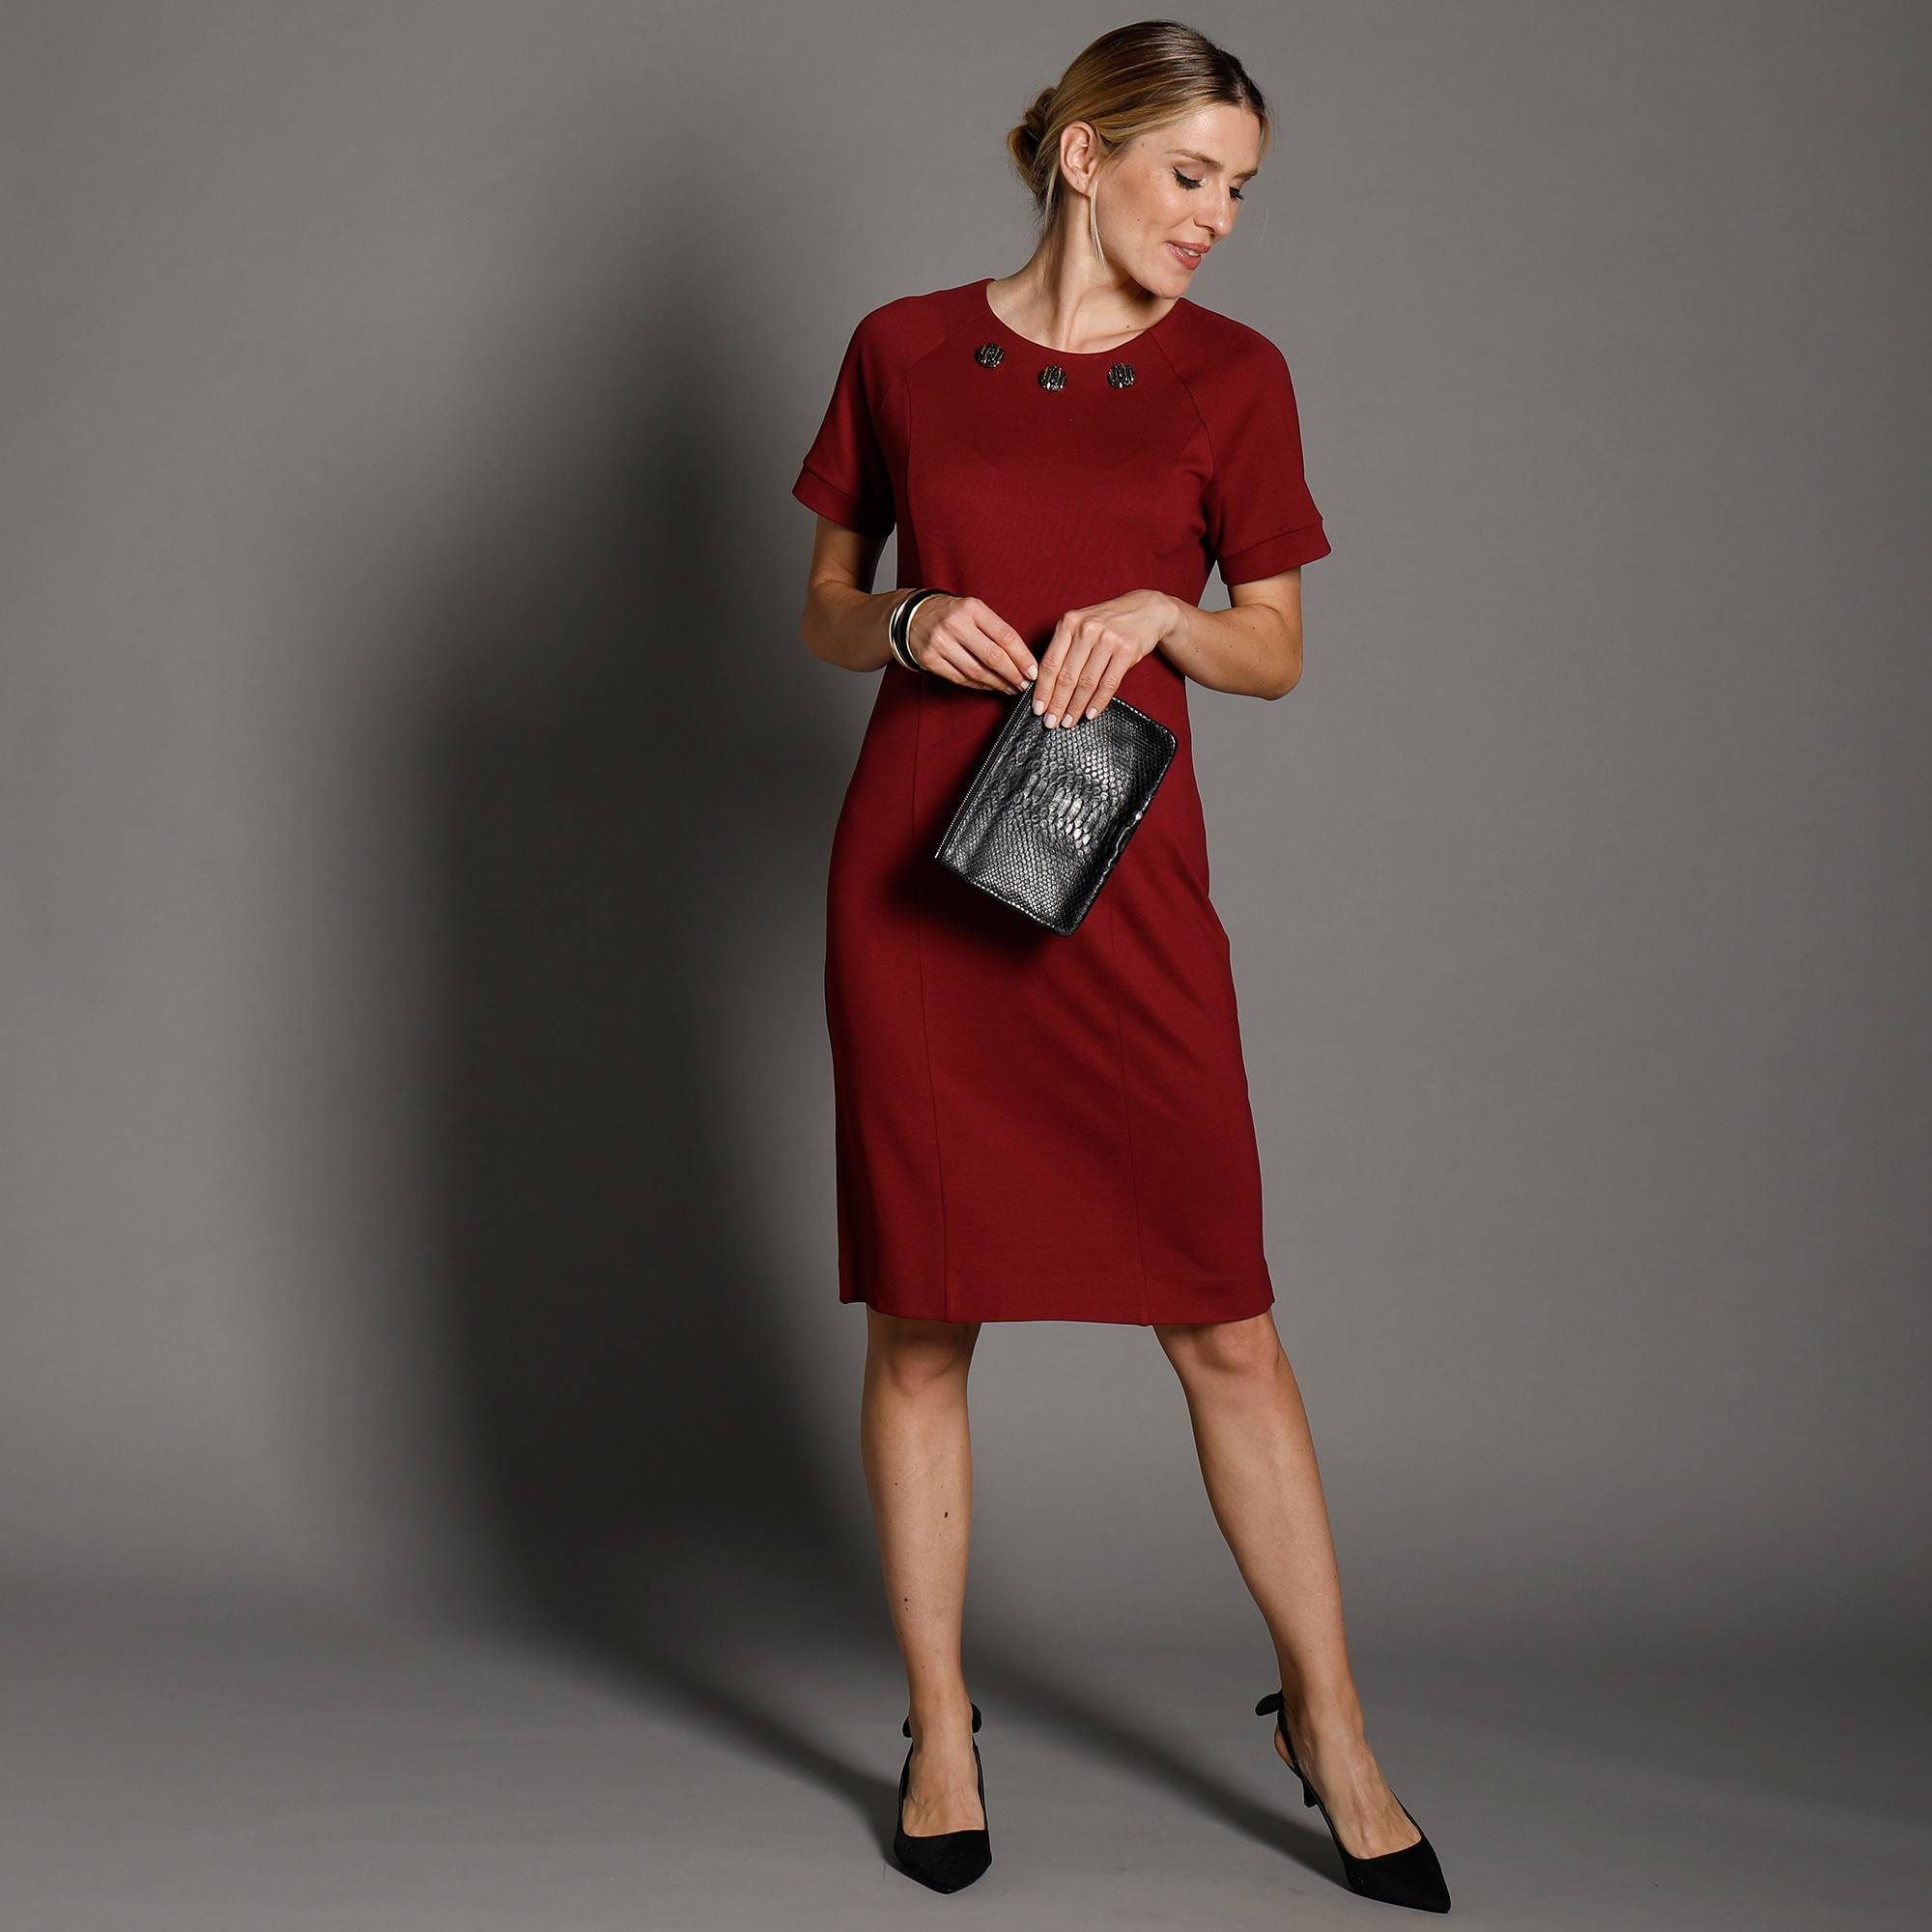 Robe unie col boutons fantaisies - Rouge - Taille : 38,40 - Blancheporte